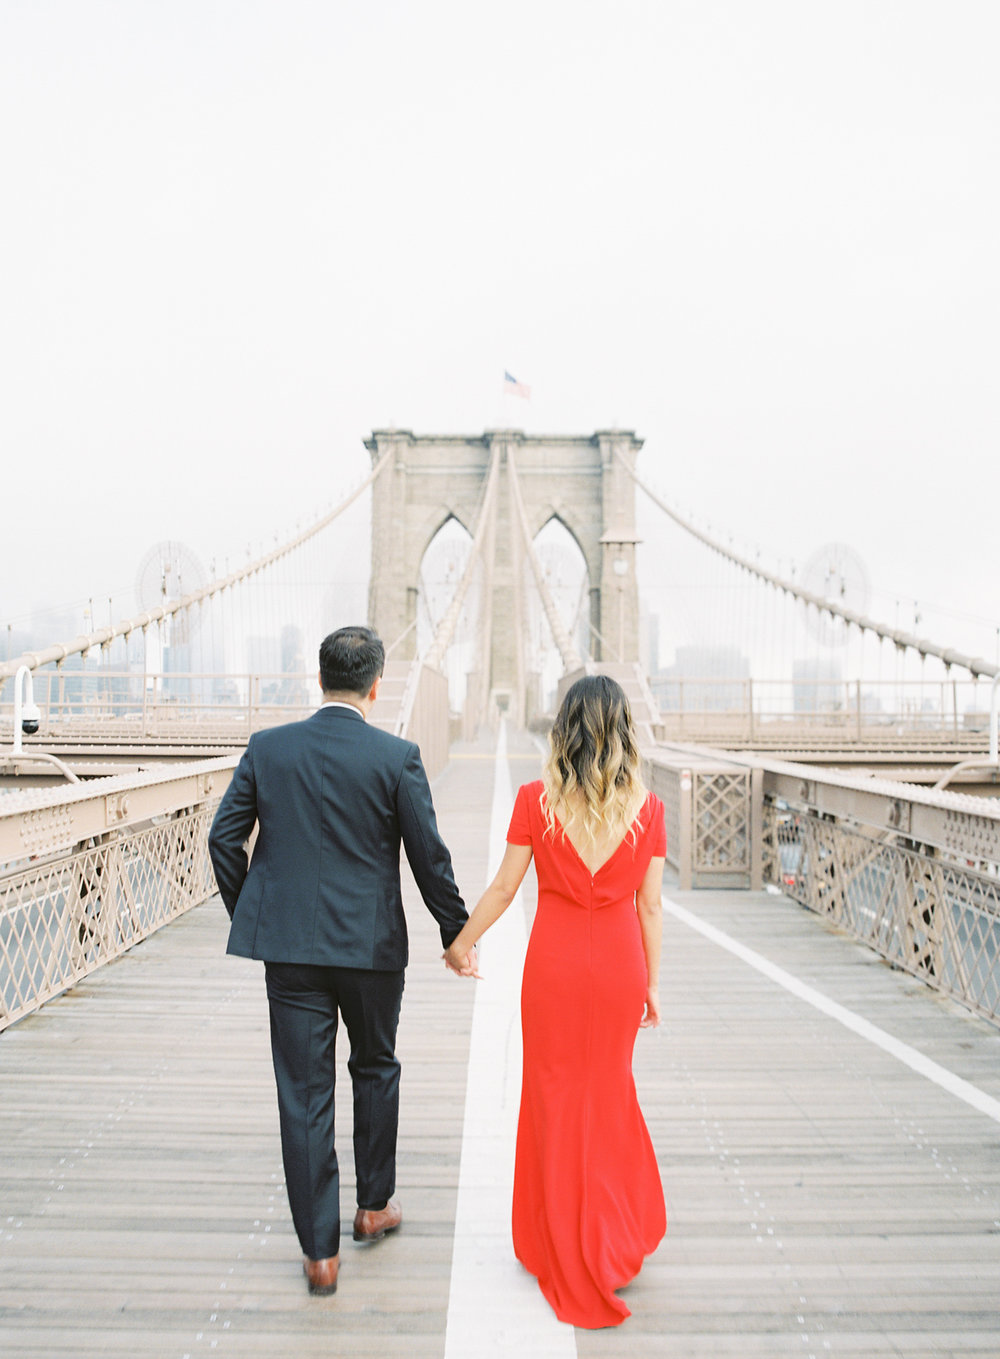 New-York-Film-Engagement-Session-Brooklyn-Bridge-Central-Park-6.jpg